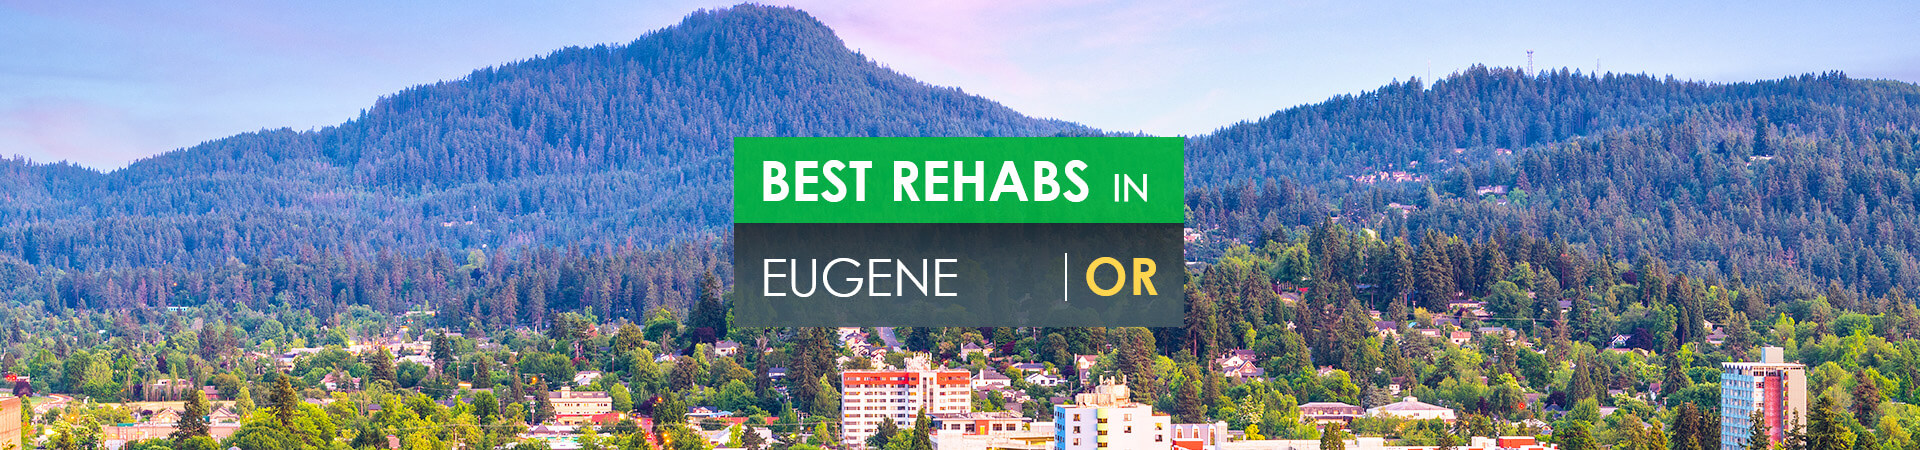 Best rehabs in Eugene, OR